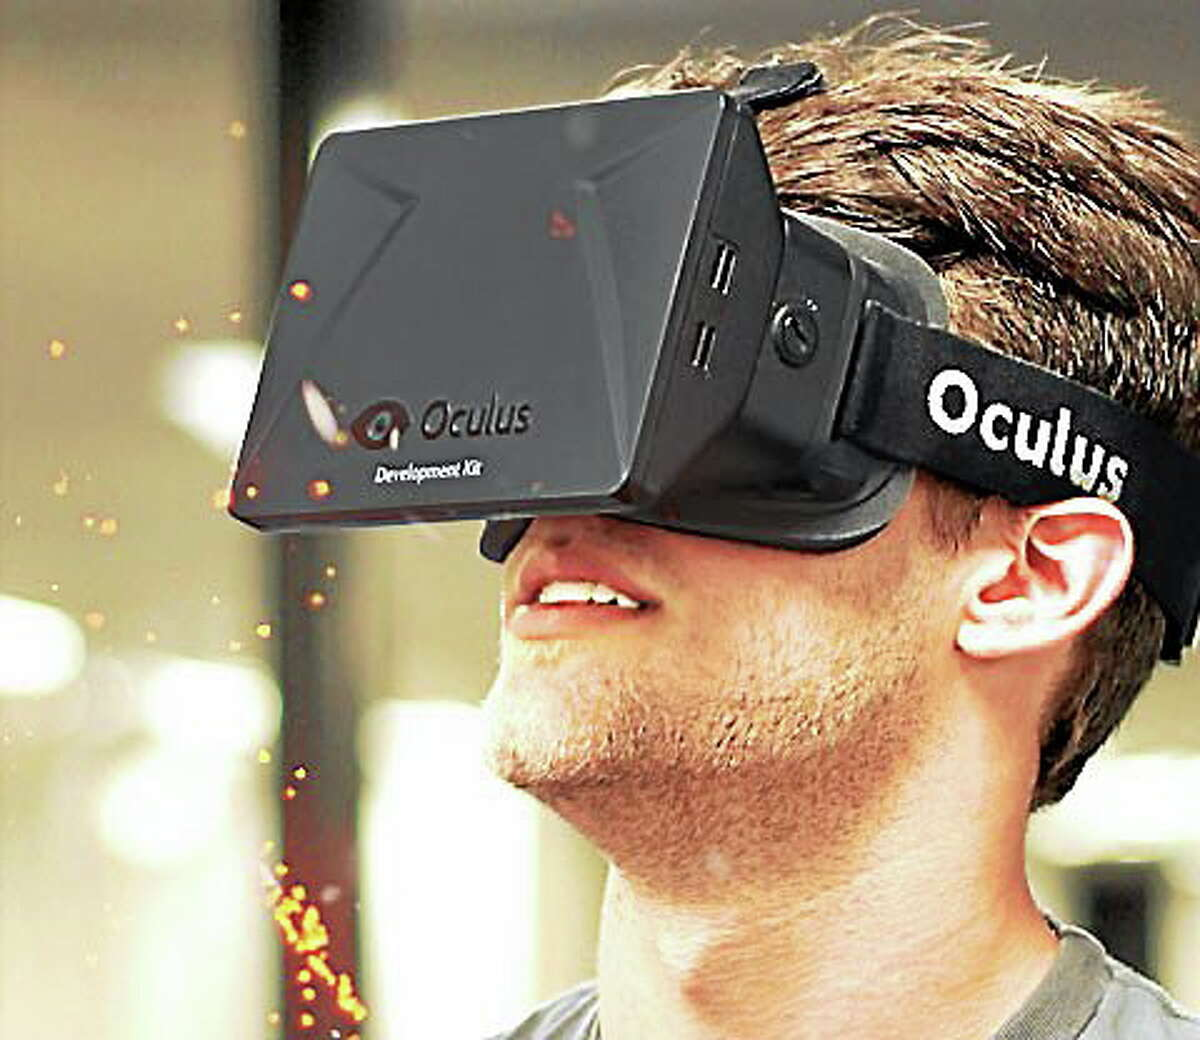 OCULUS An image from Oculus' website shows the Oculus Rift, a new virtual reality headset.